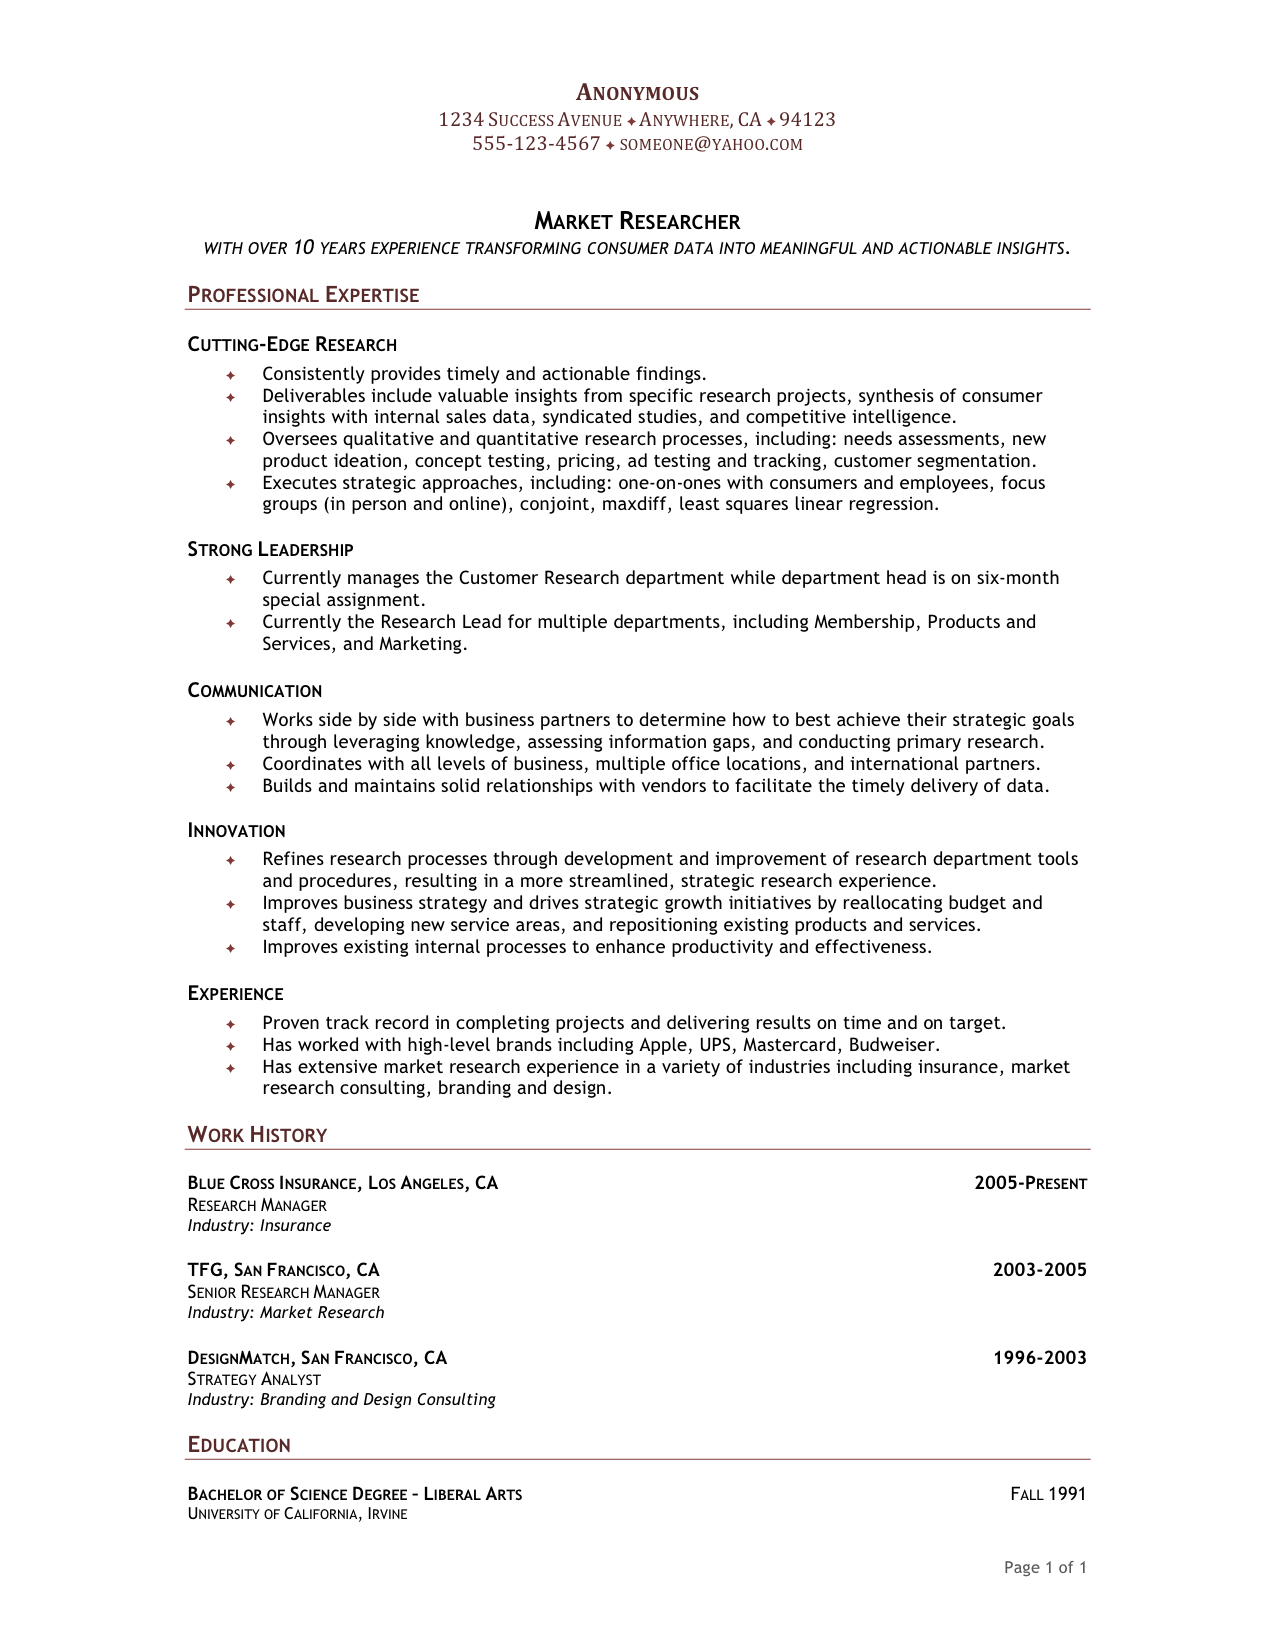 Chronological Resume Definition Doc Functional Chronological  Definition Of Functional Resume